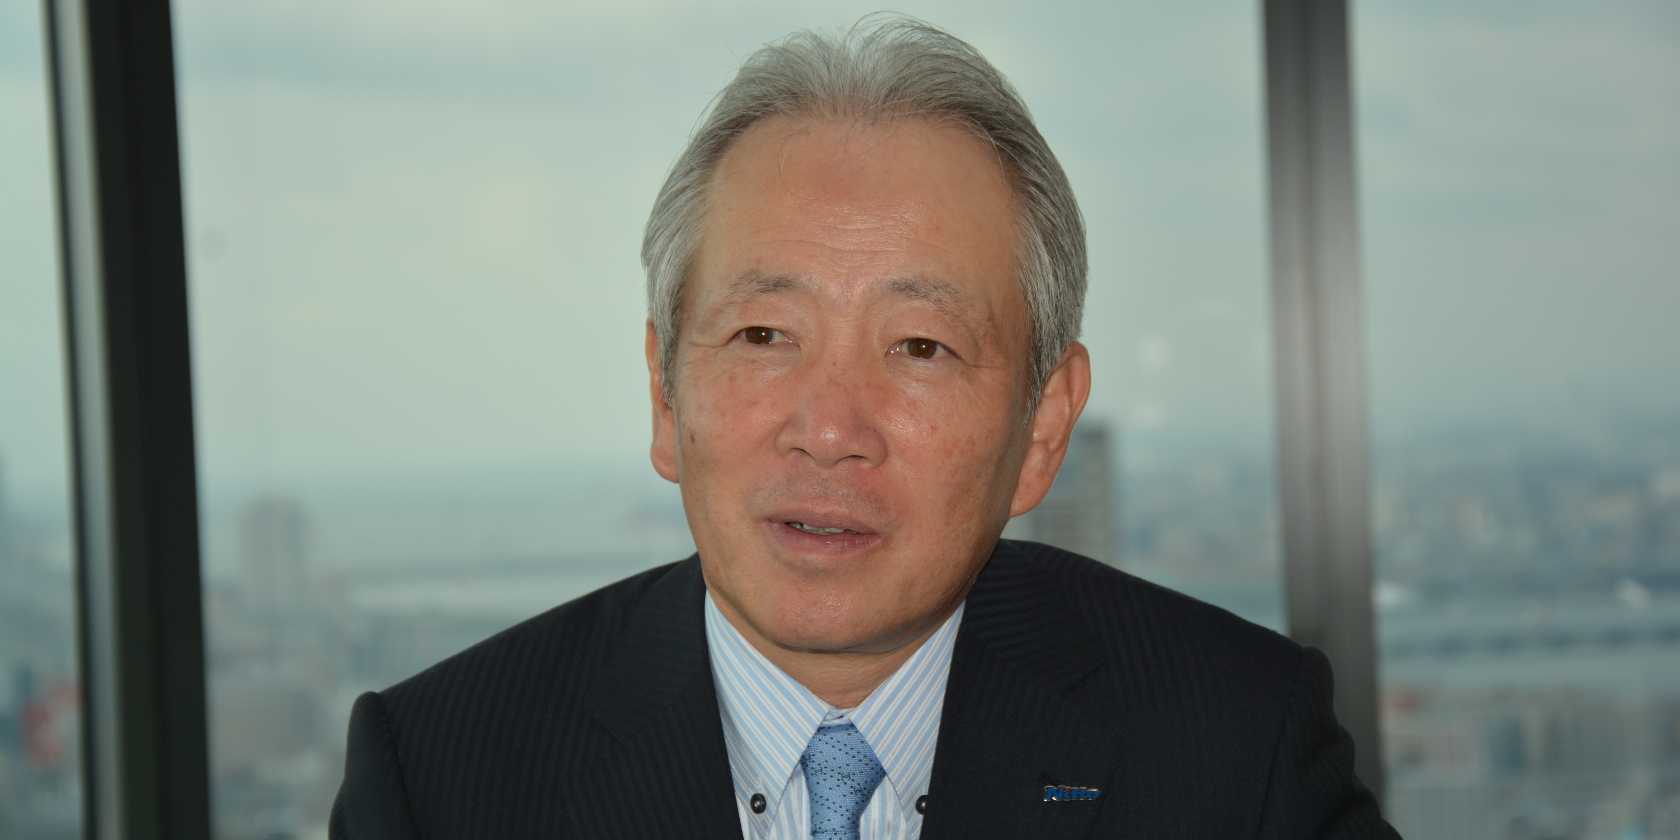 Interview: Nitto Denko CEO Hideo Takasaki Talks Promising Business in Displays, Life Sciences and Optical Cables